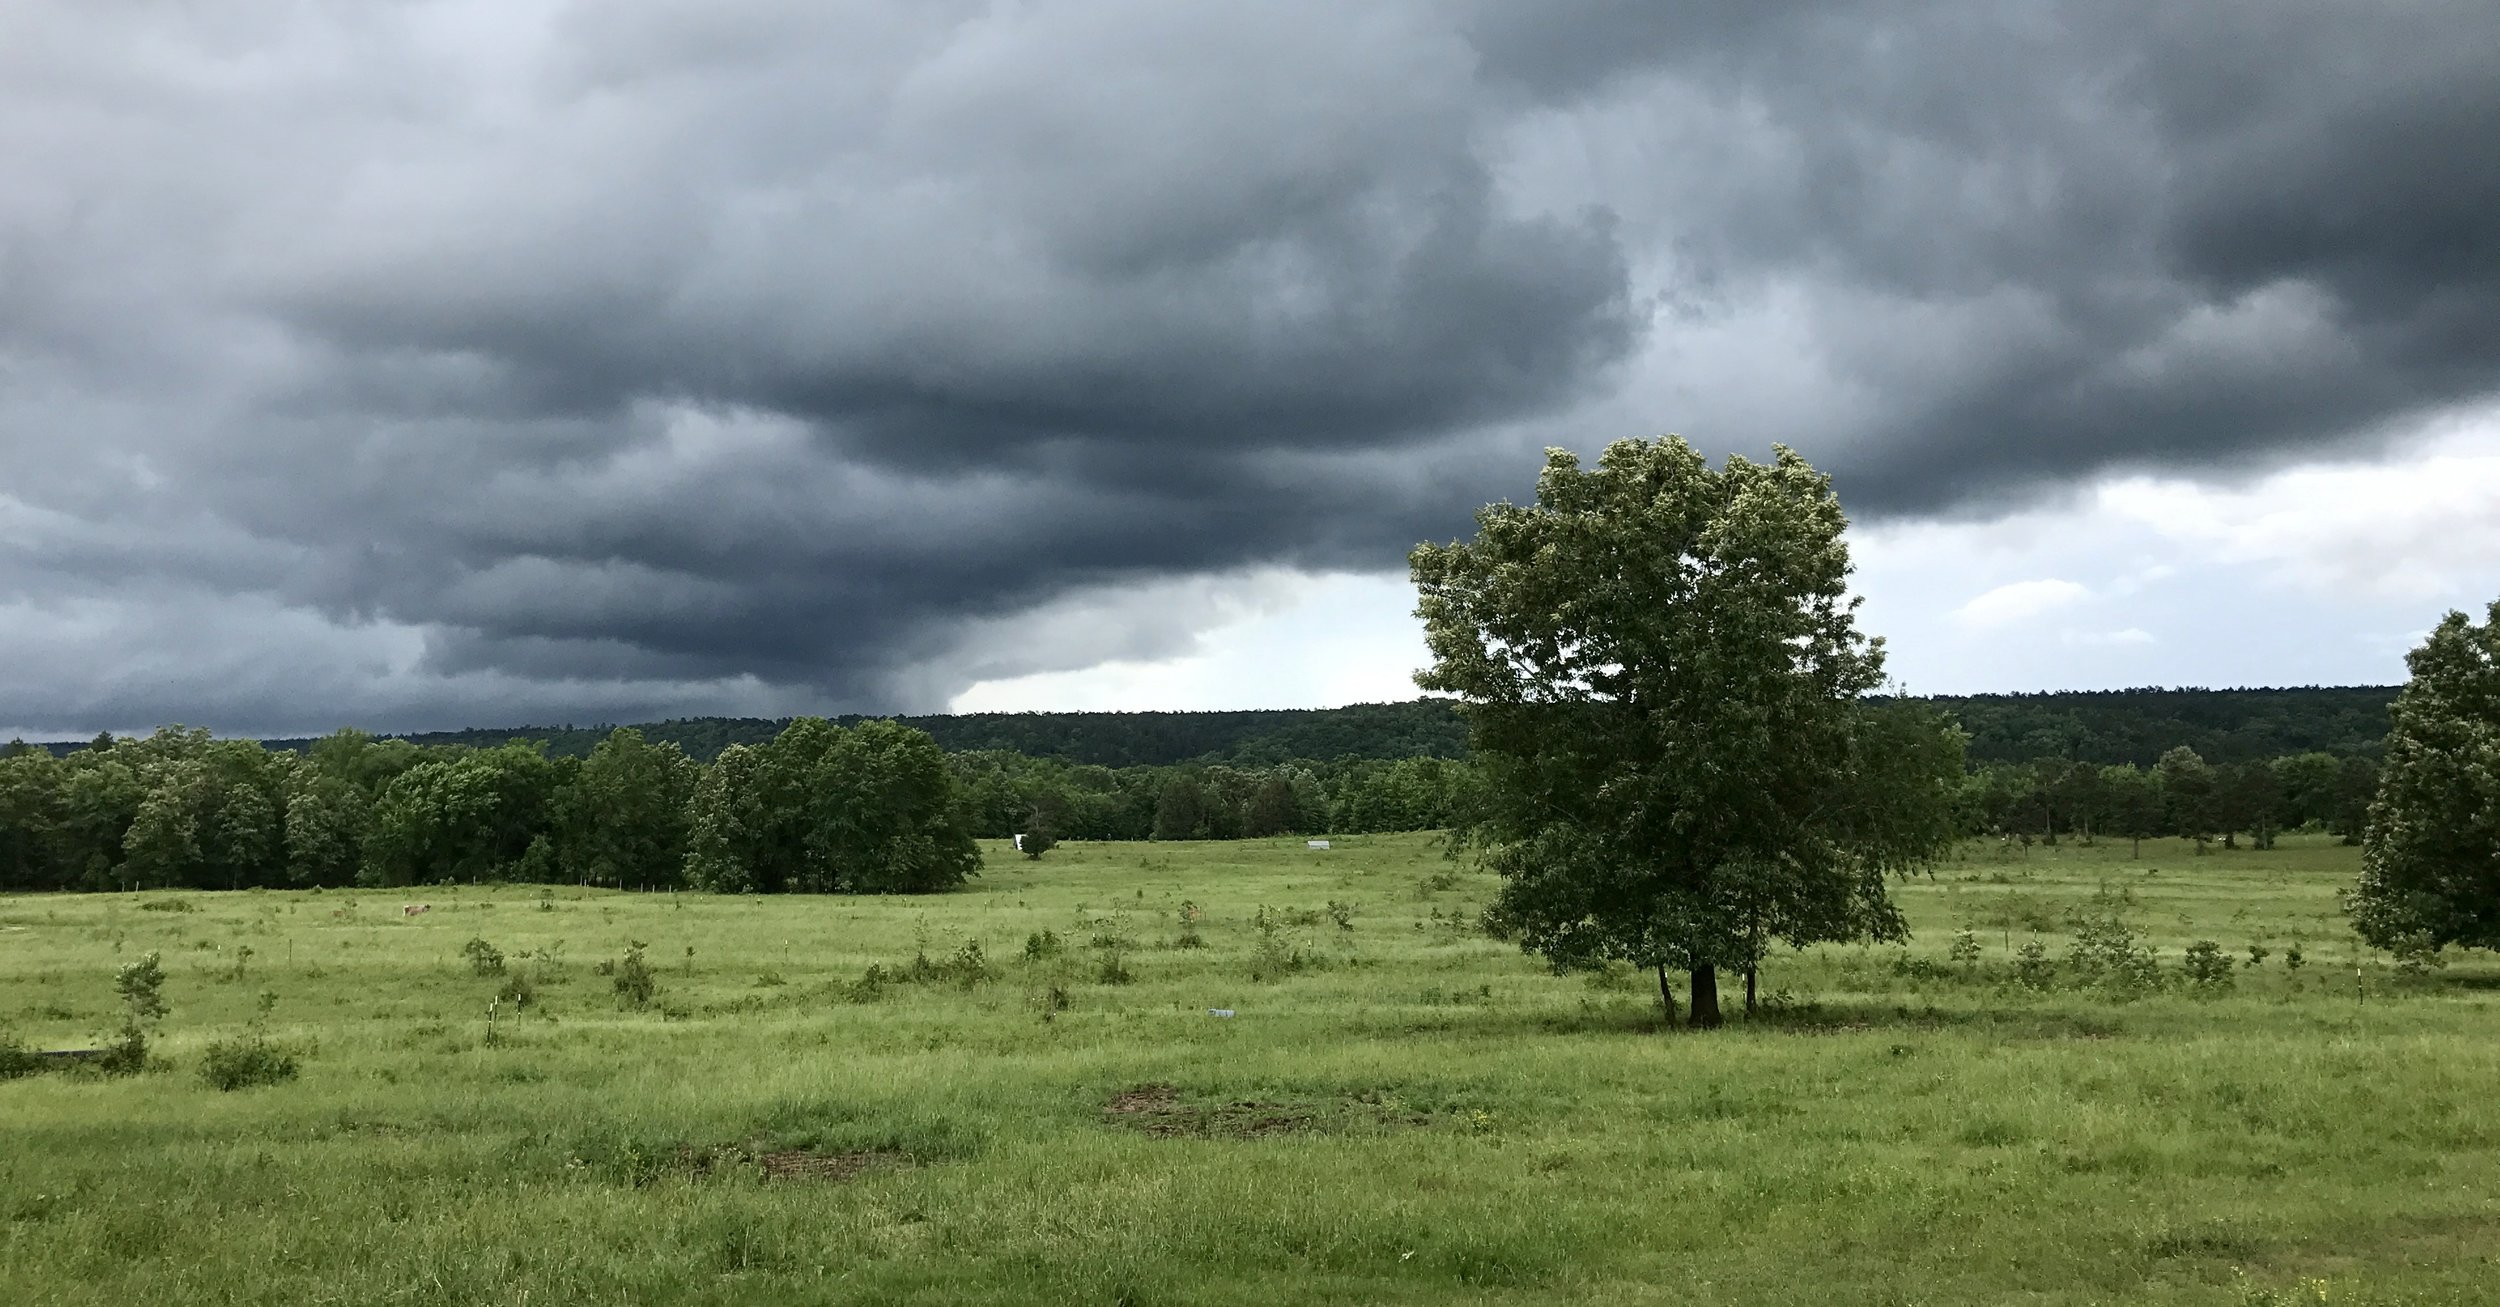 An unusual, westward moving front churning across the farm